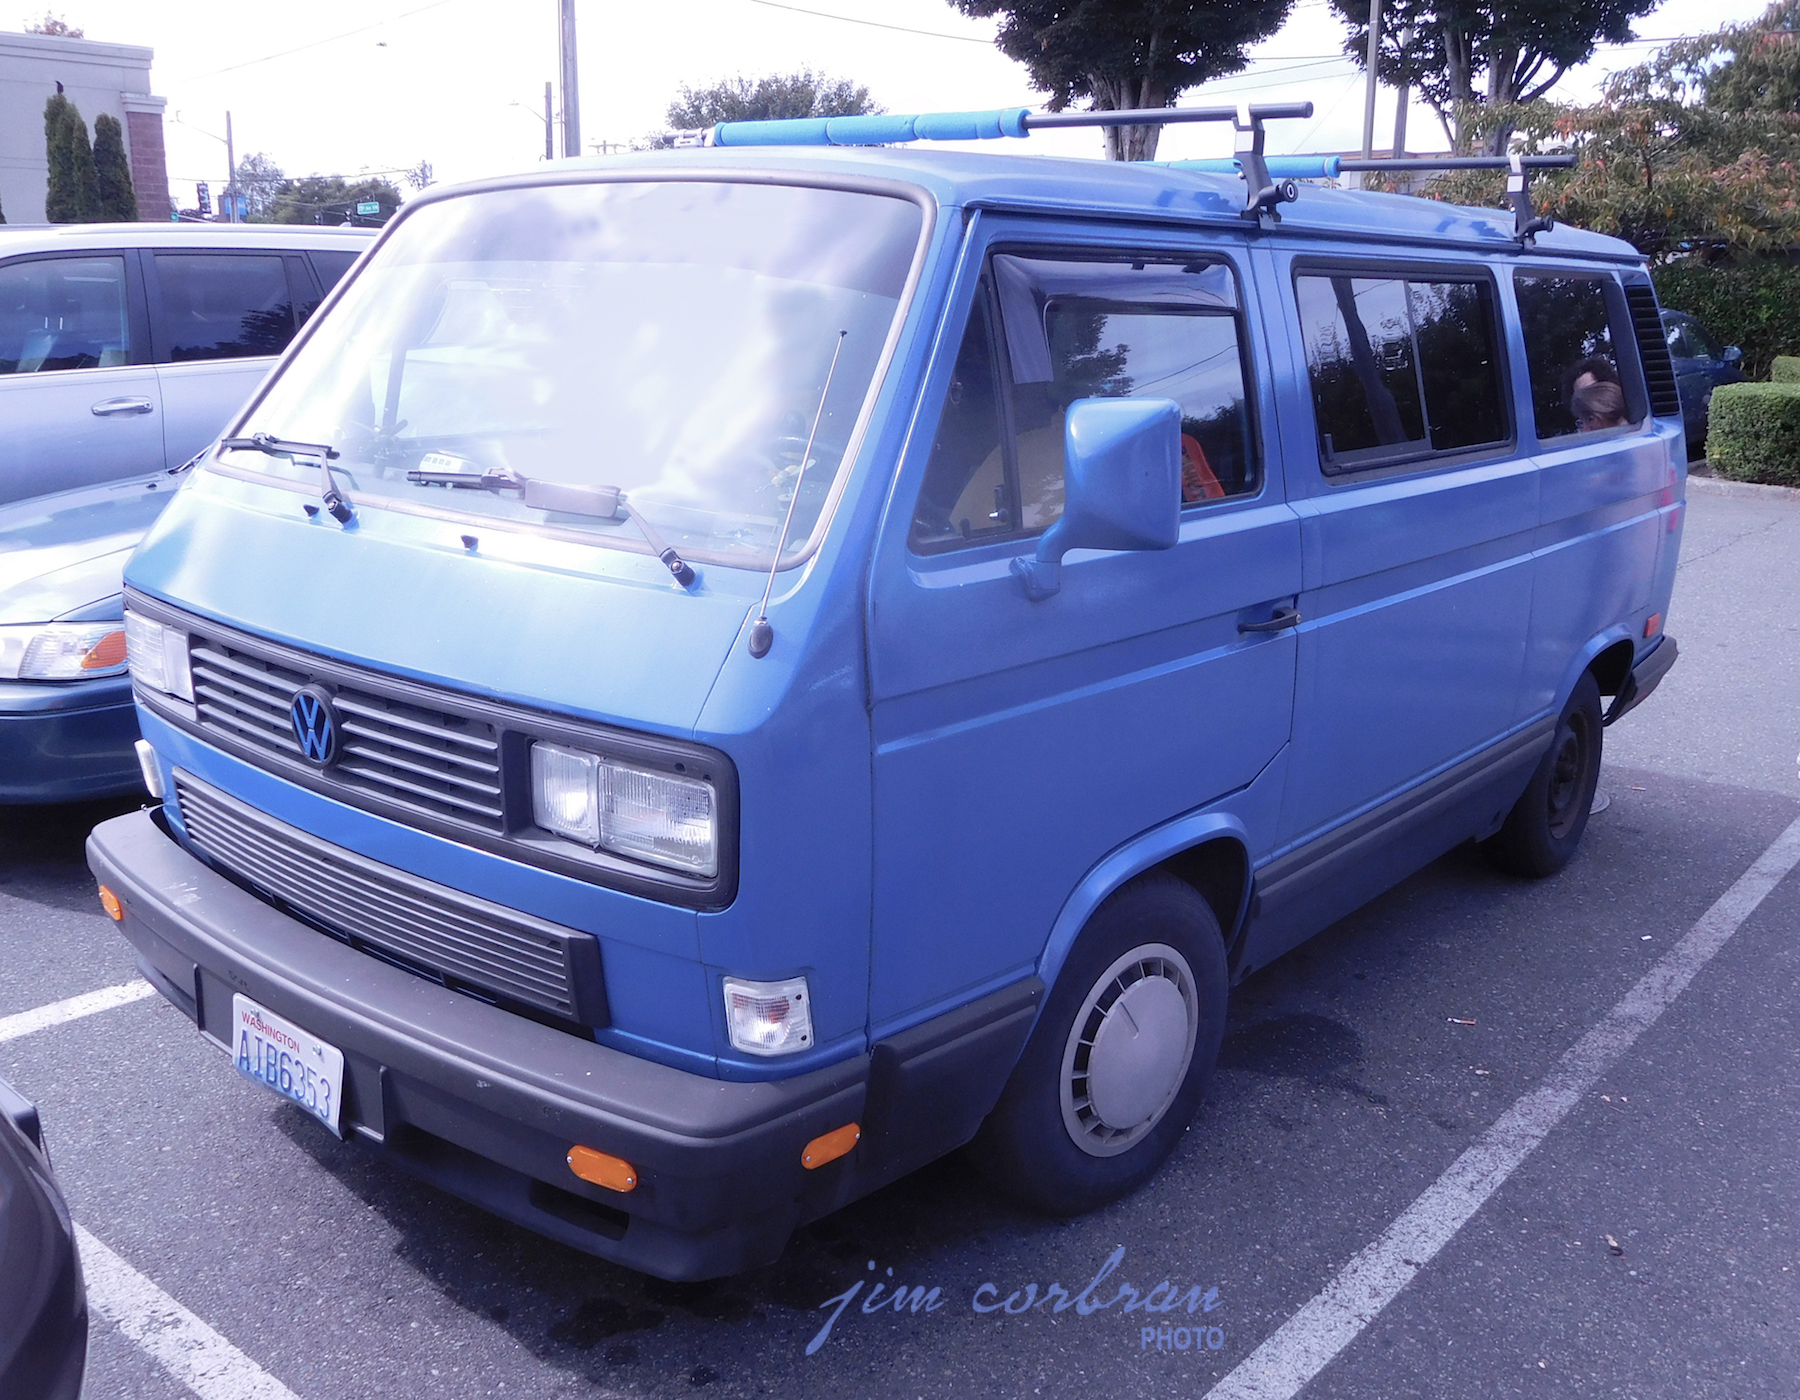 RealRides of WNY (on the Road) - VW Vanagon, c1986